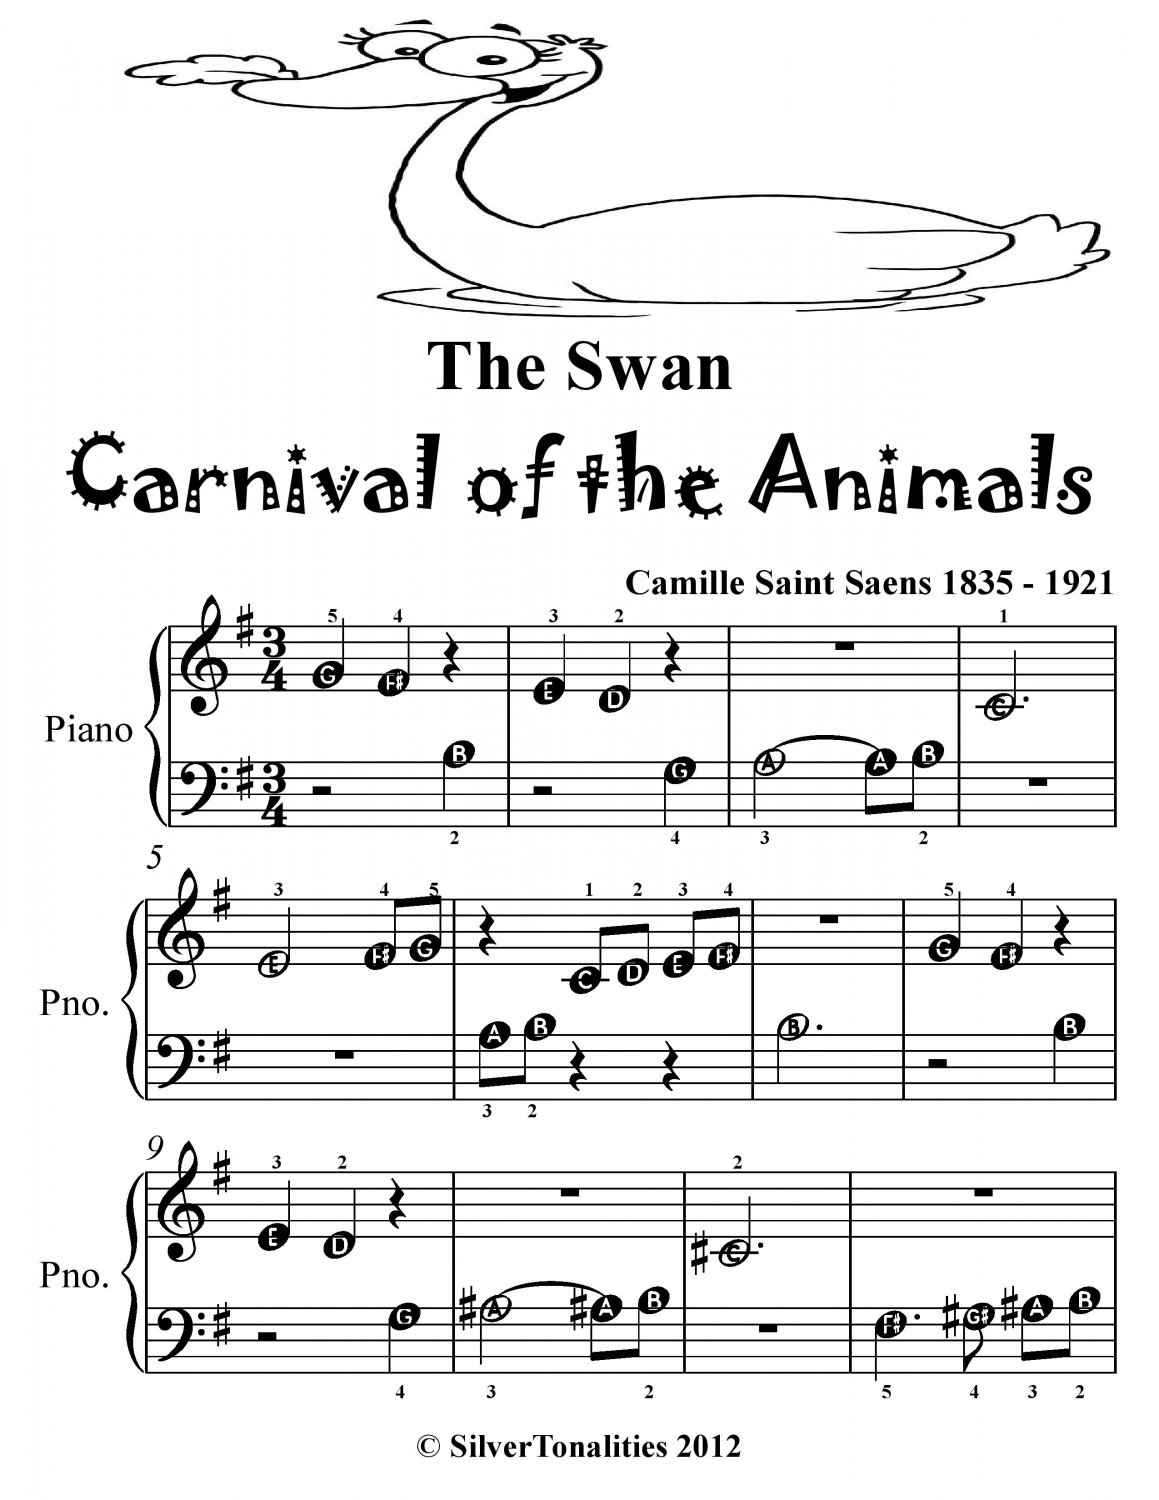 The Swan Carnival of the Animals Beginner Piano Sheet Music Tadpole Edition PDF